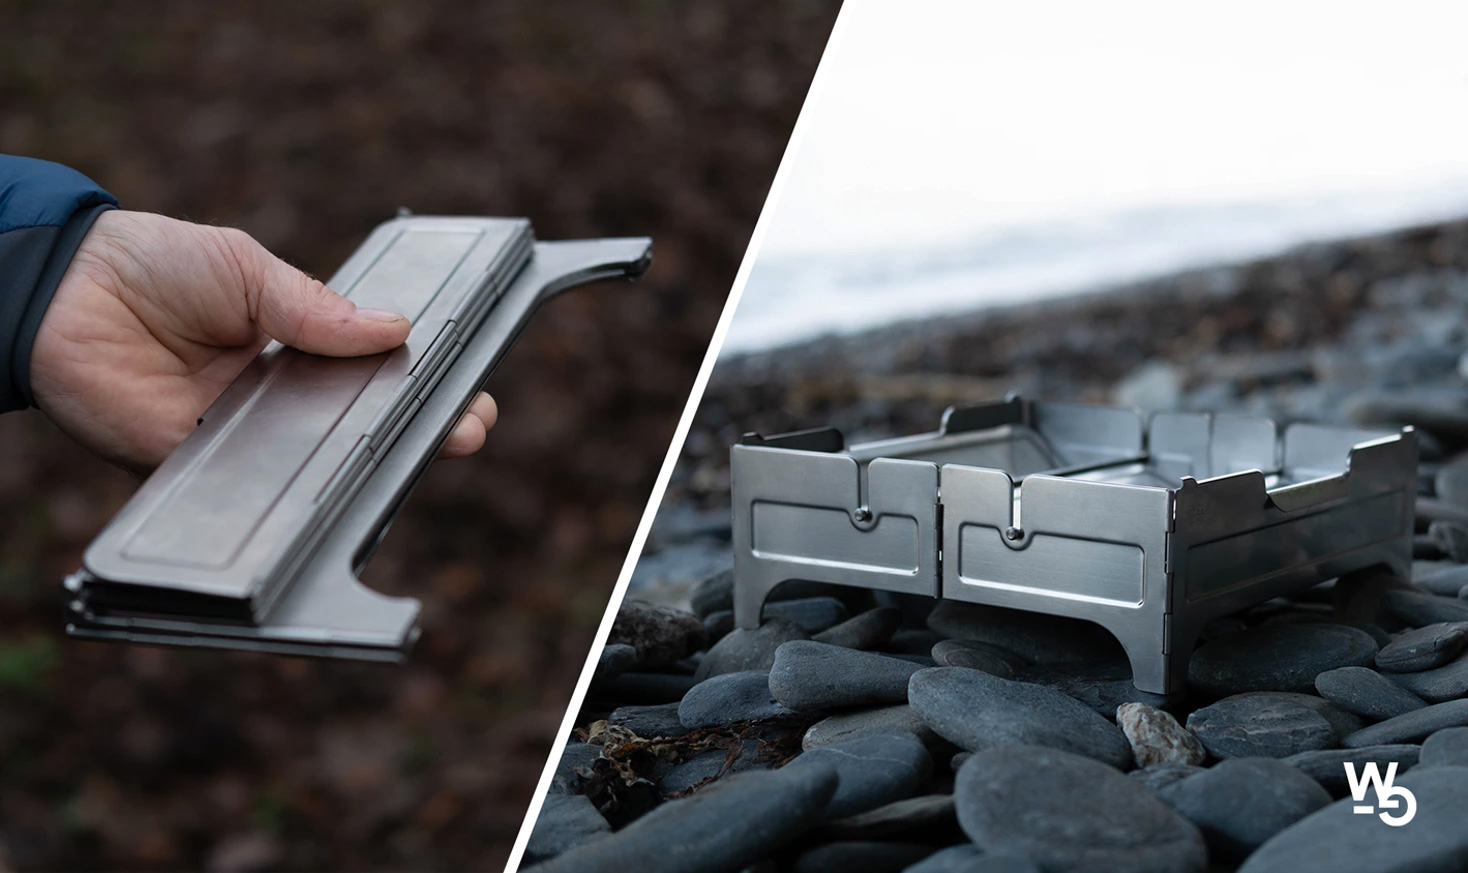 Add the Ambiance of a Campfire with the Compact, Portable Fire Safe at werd.com